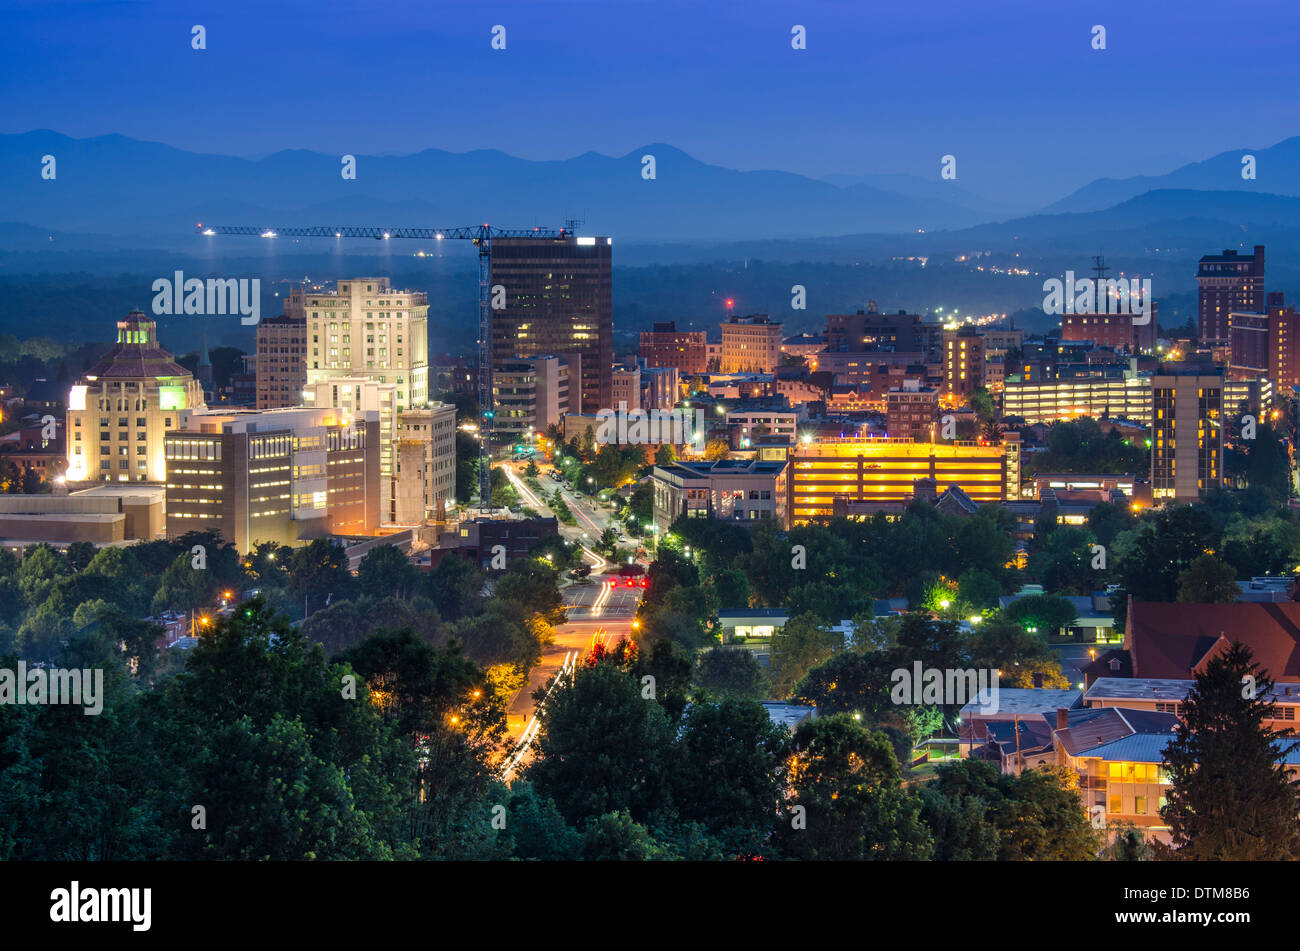 Asheville, North Carolina, USA at twilight. Stock Photo